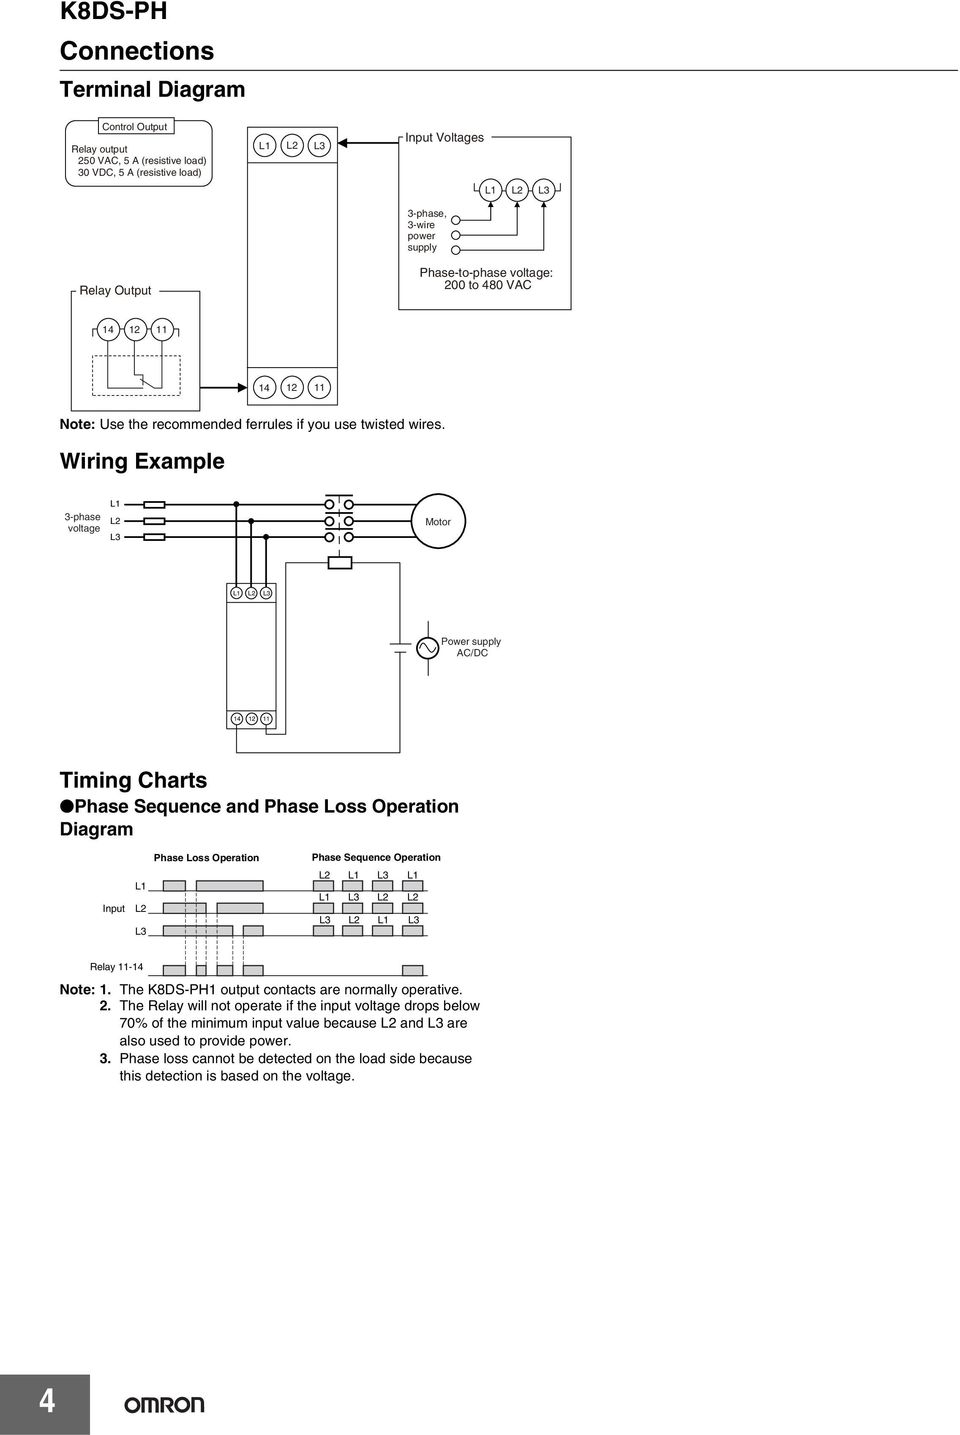 Wiring Example 3-phase voltage Motor Power supply AC/DC 14 12 11 Timing Charts Phase Sequence and Phase Loss Operation Diagram Input Phase Loss Operation Phase Sequence Operation Relay 11-14